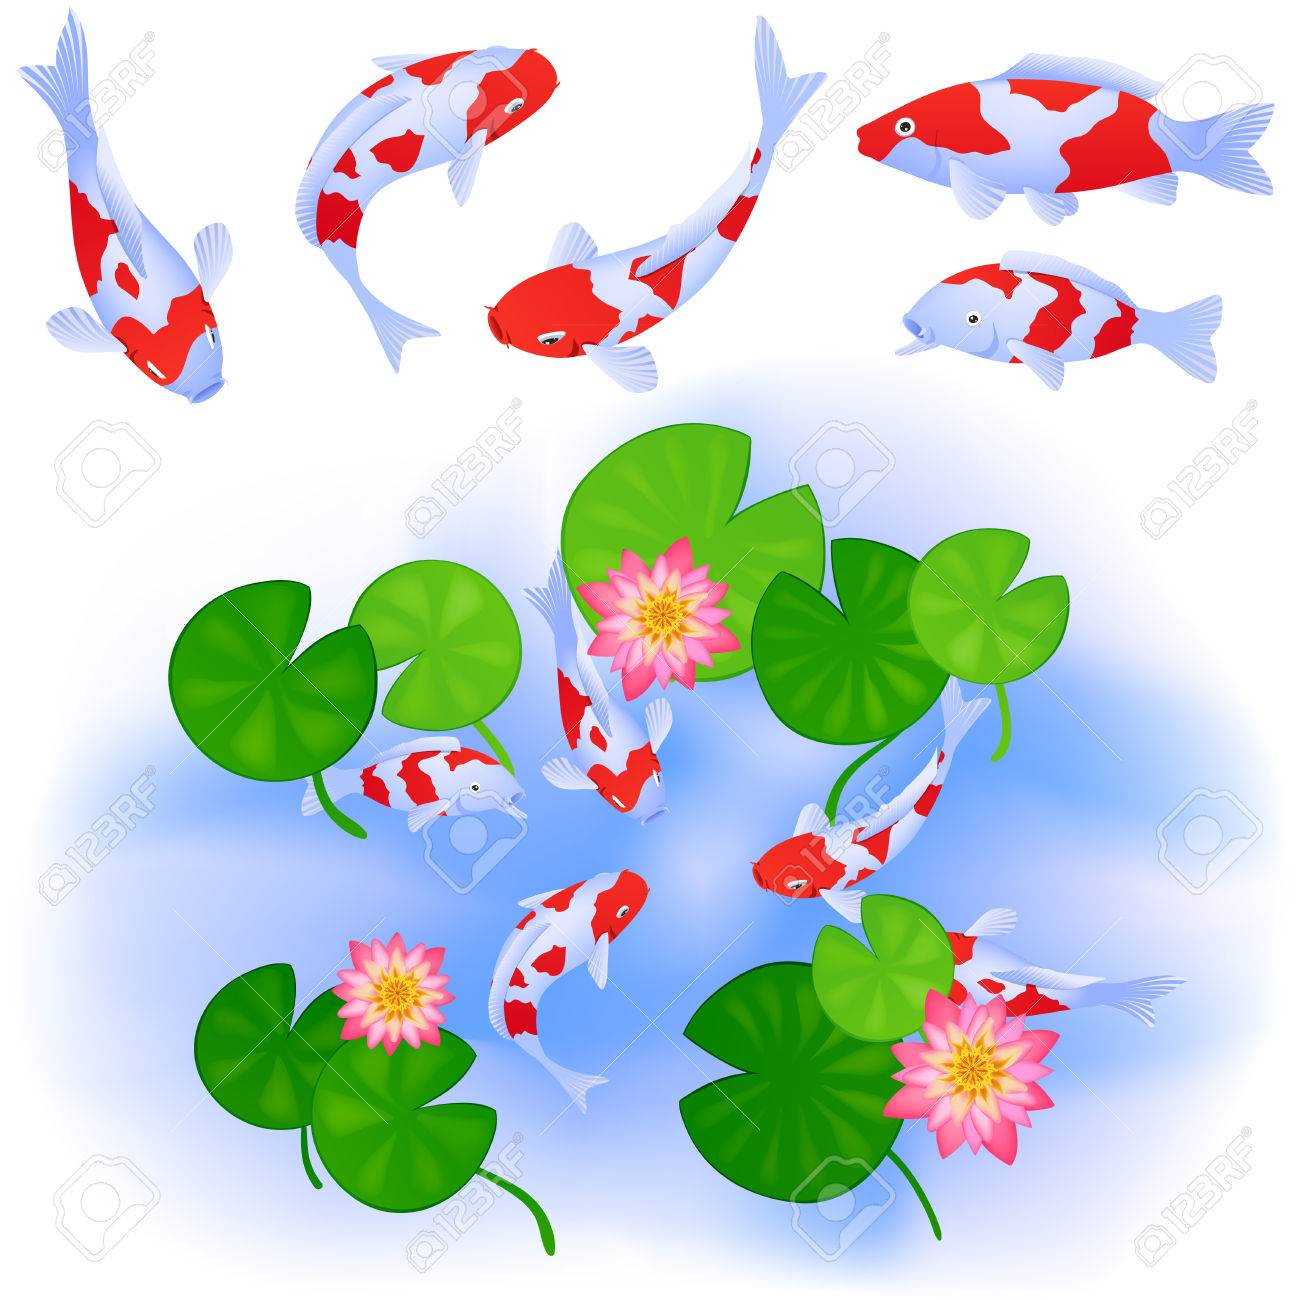 Coy Fish Stock Photos. Royalty Free Coy Fish Images